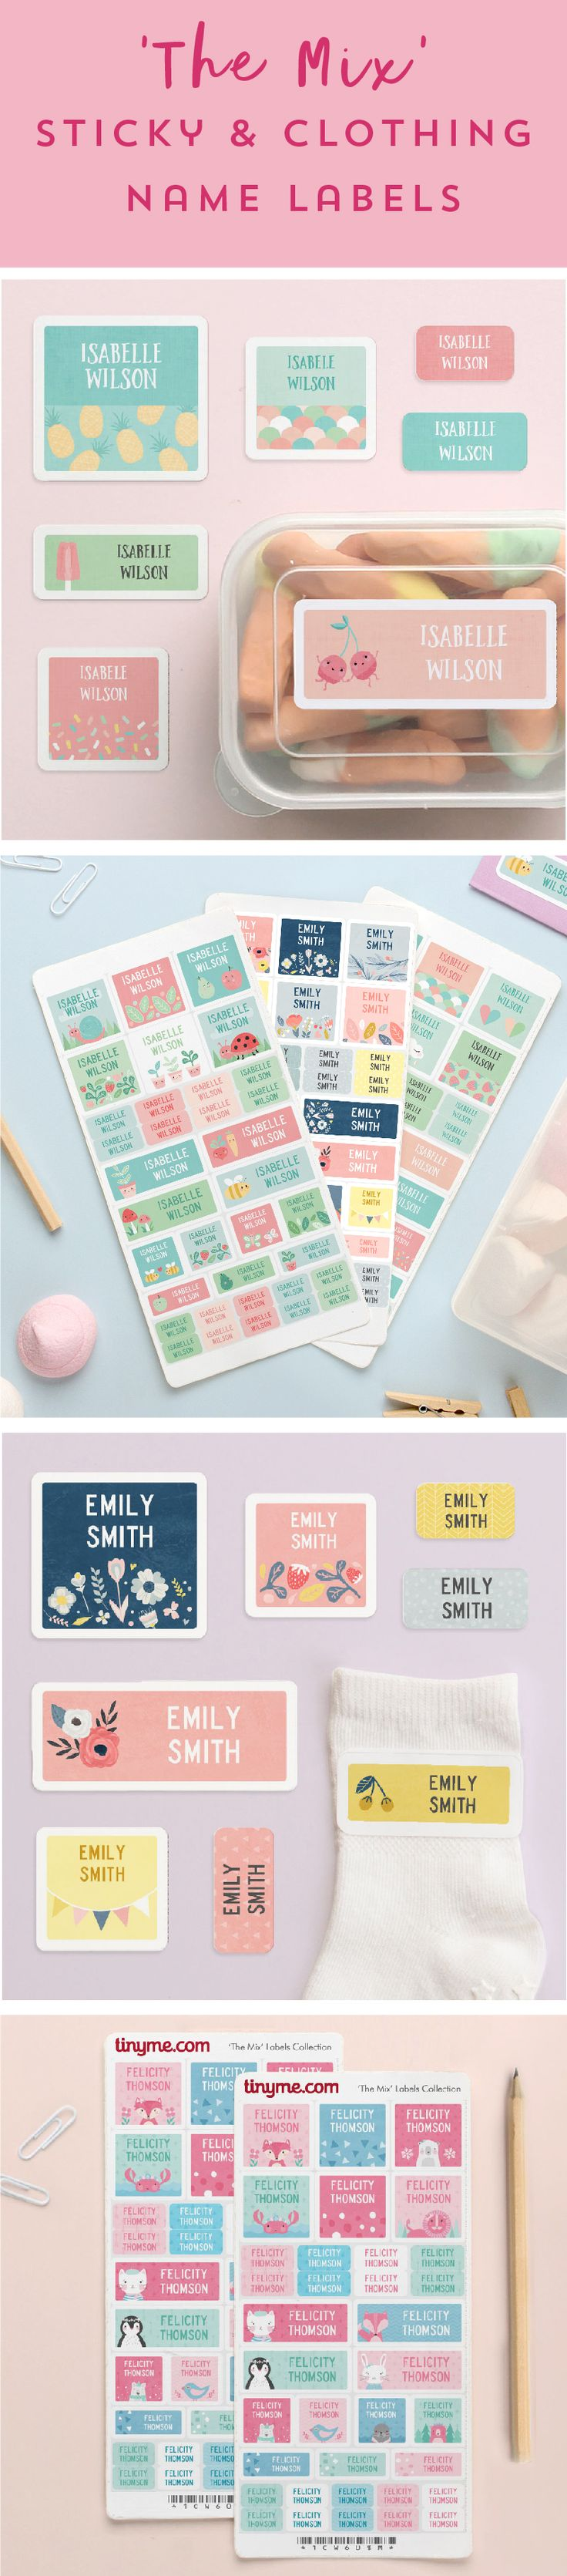 28 best graphic design images on pinterest character design 35 sticky or clothing name labels from 10 the best kids labels pack fandeluxe Choice Image